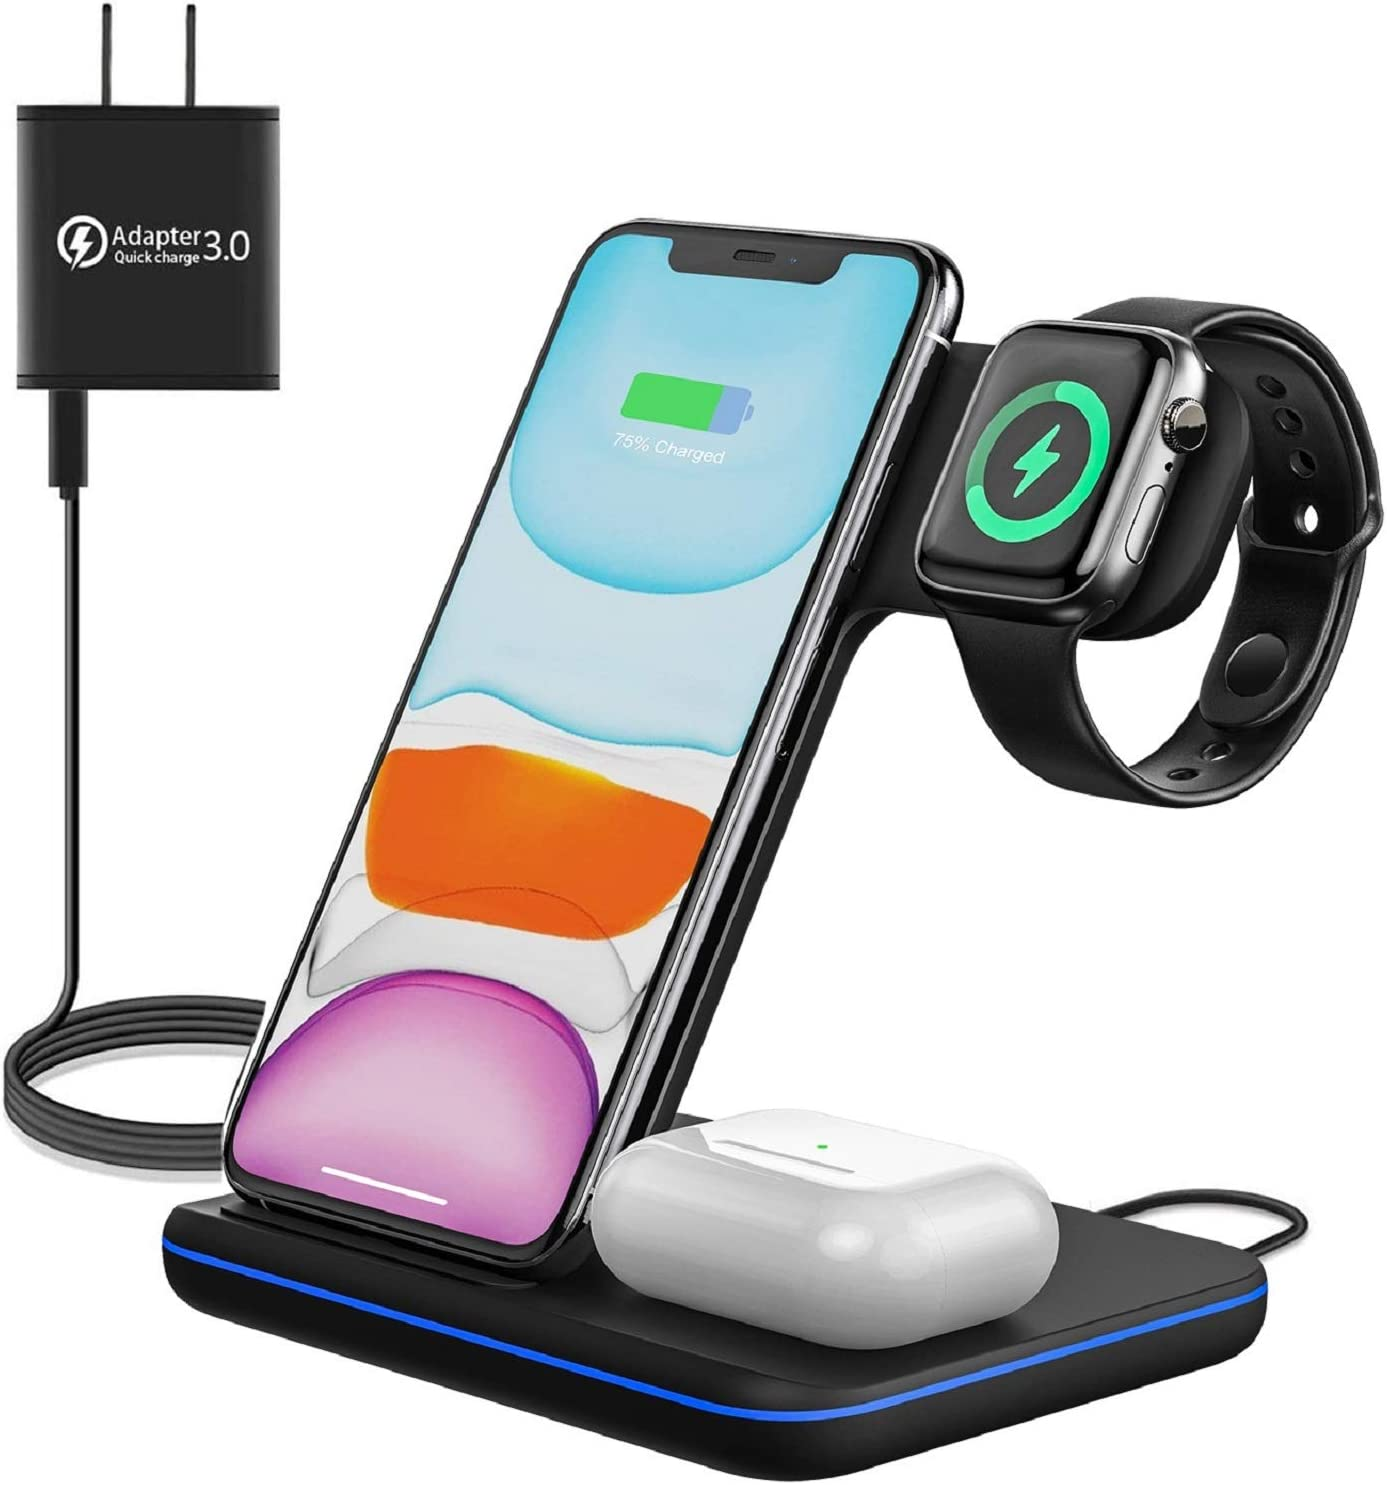 Upgraded Wireless Charging Station, 3-in-1 Wireless Charger Stand for Apple Watch 6/5/4/3/2/1, Airpods Pro/2, iPhone SE II/11/11 Pro/11 Pro Max, XS Max/XS/XR/X/ 8/ Plus, Samsung S20/S10/S9, Note 10/9